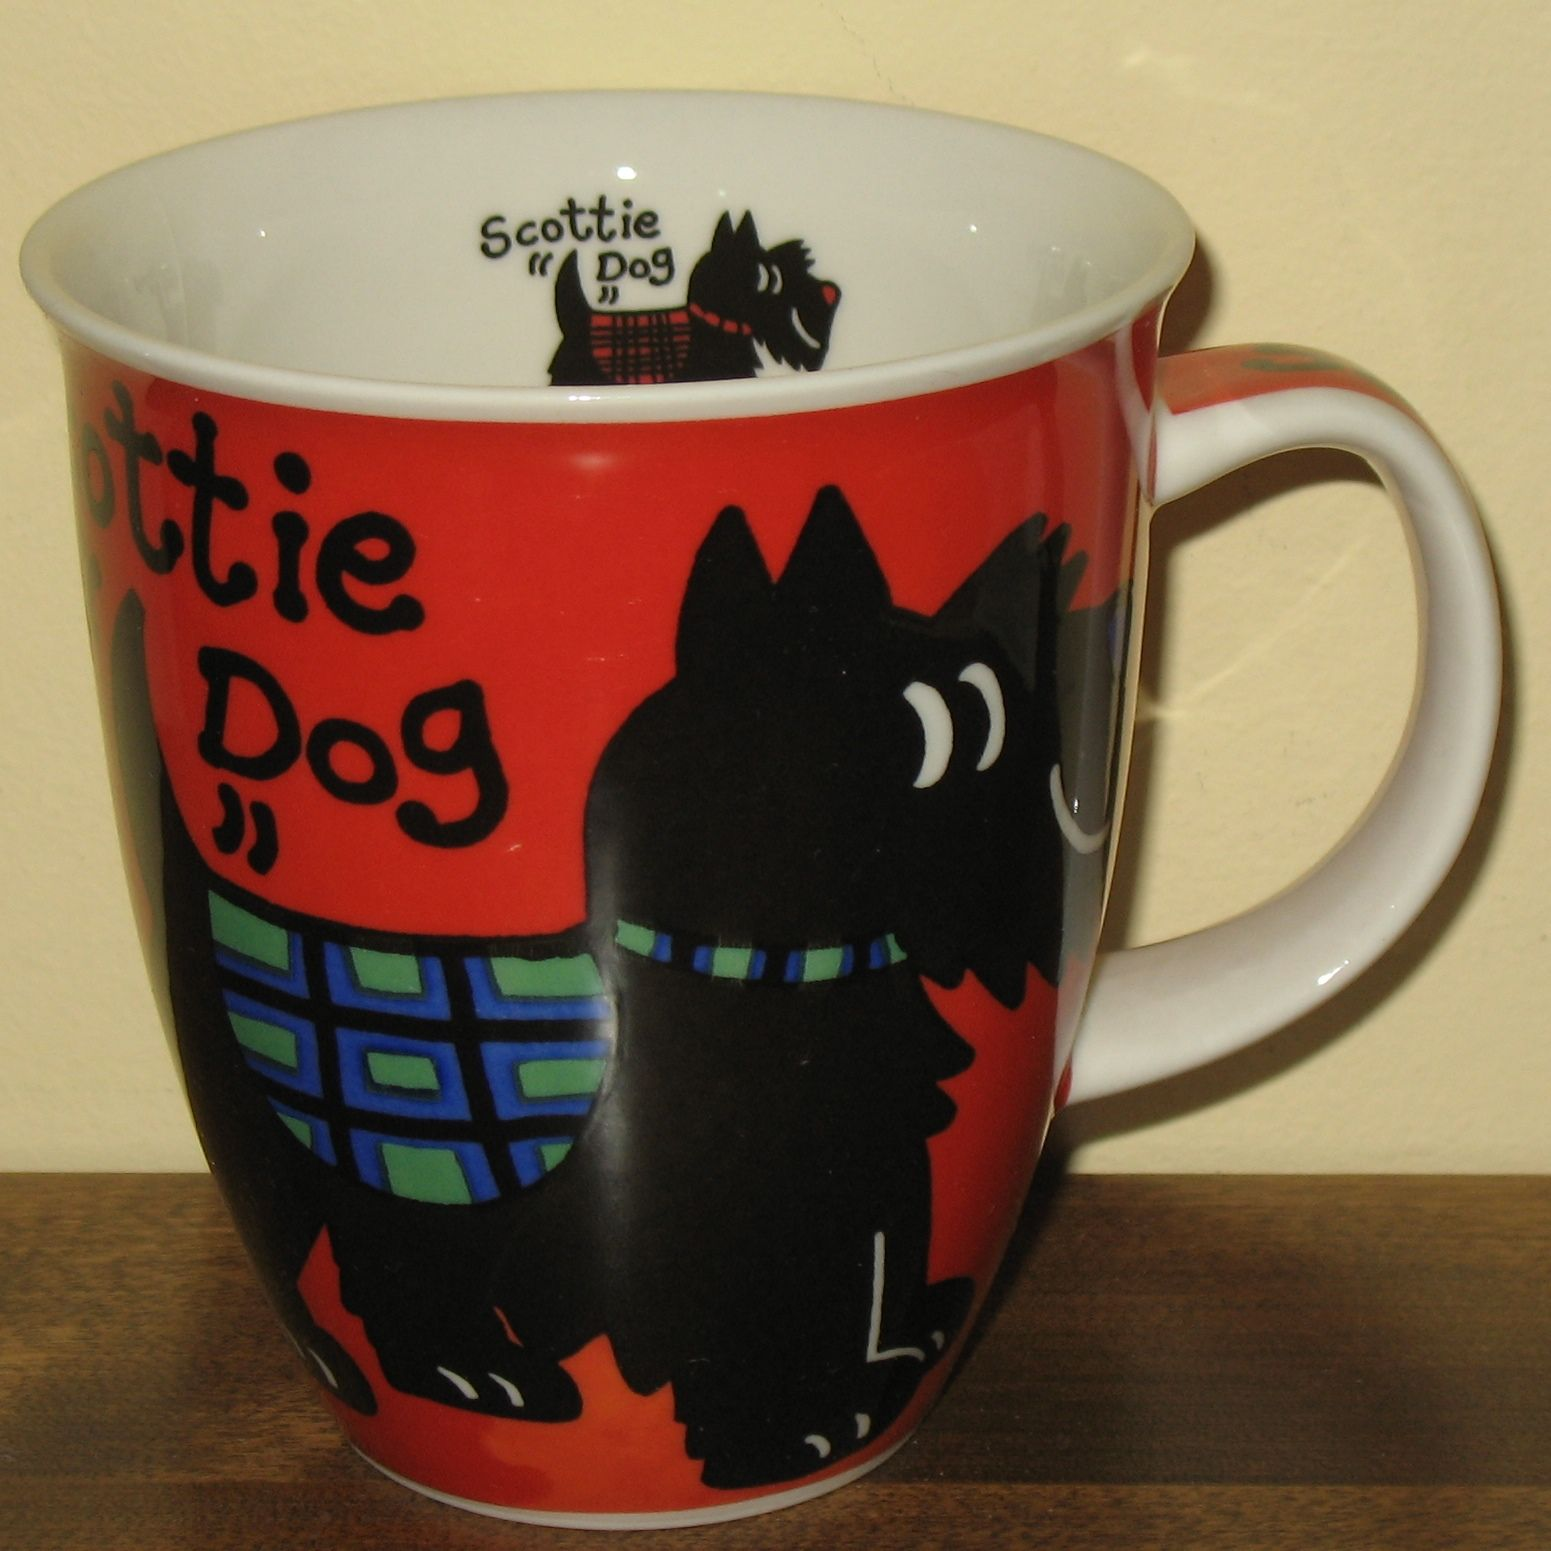 FOR DOG LOVERS Handsome Scottish Terrier Scottie dog